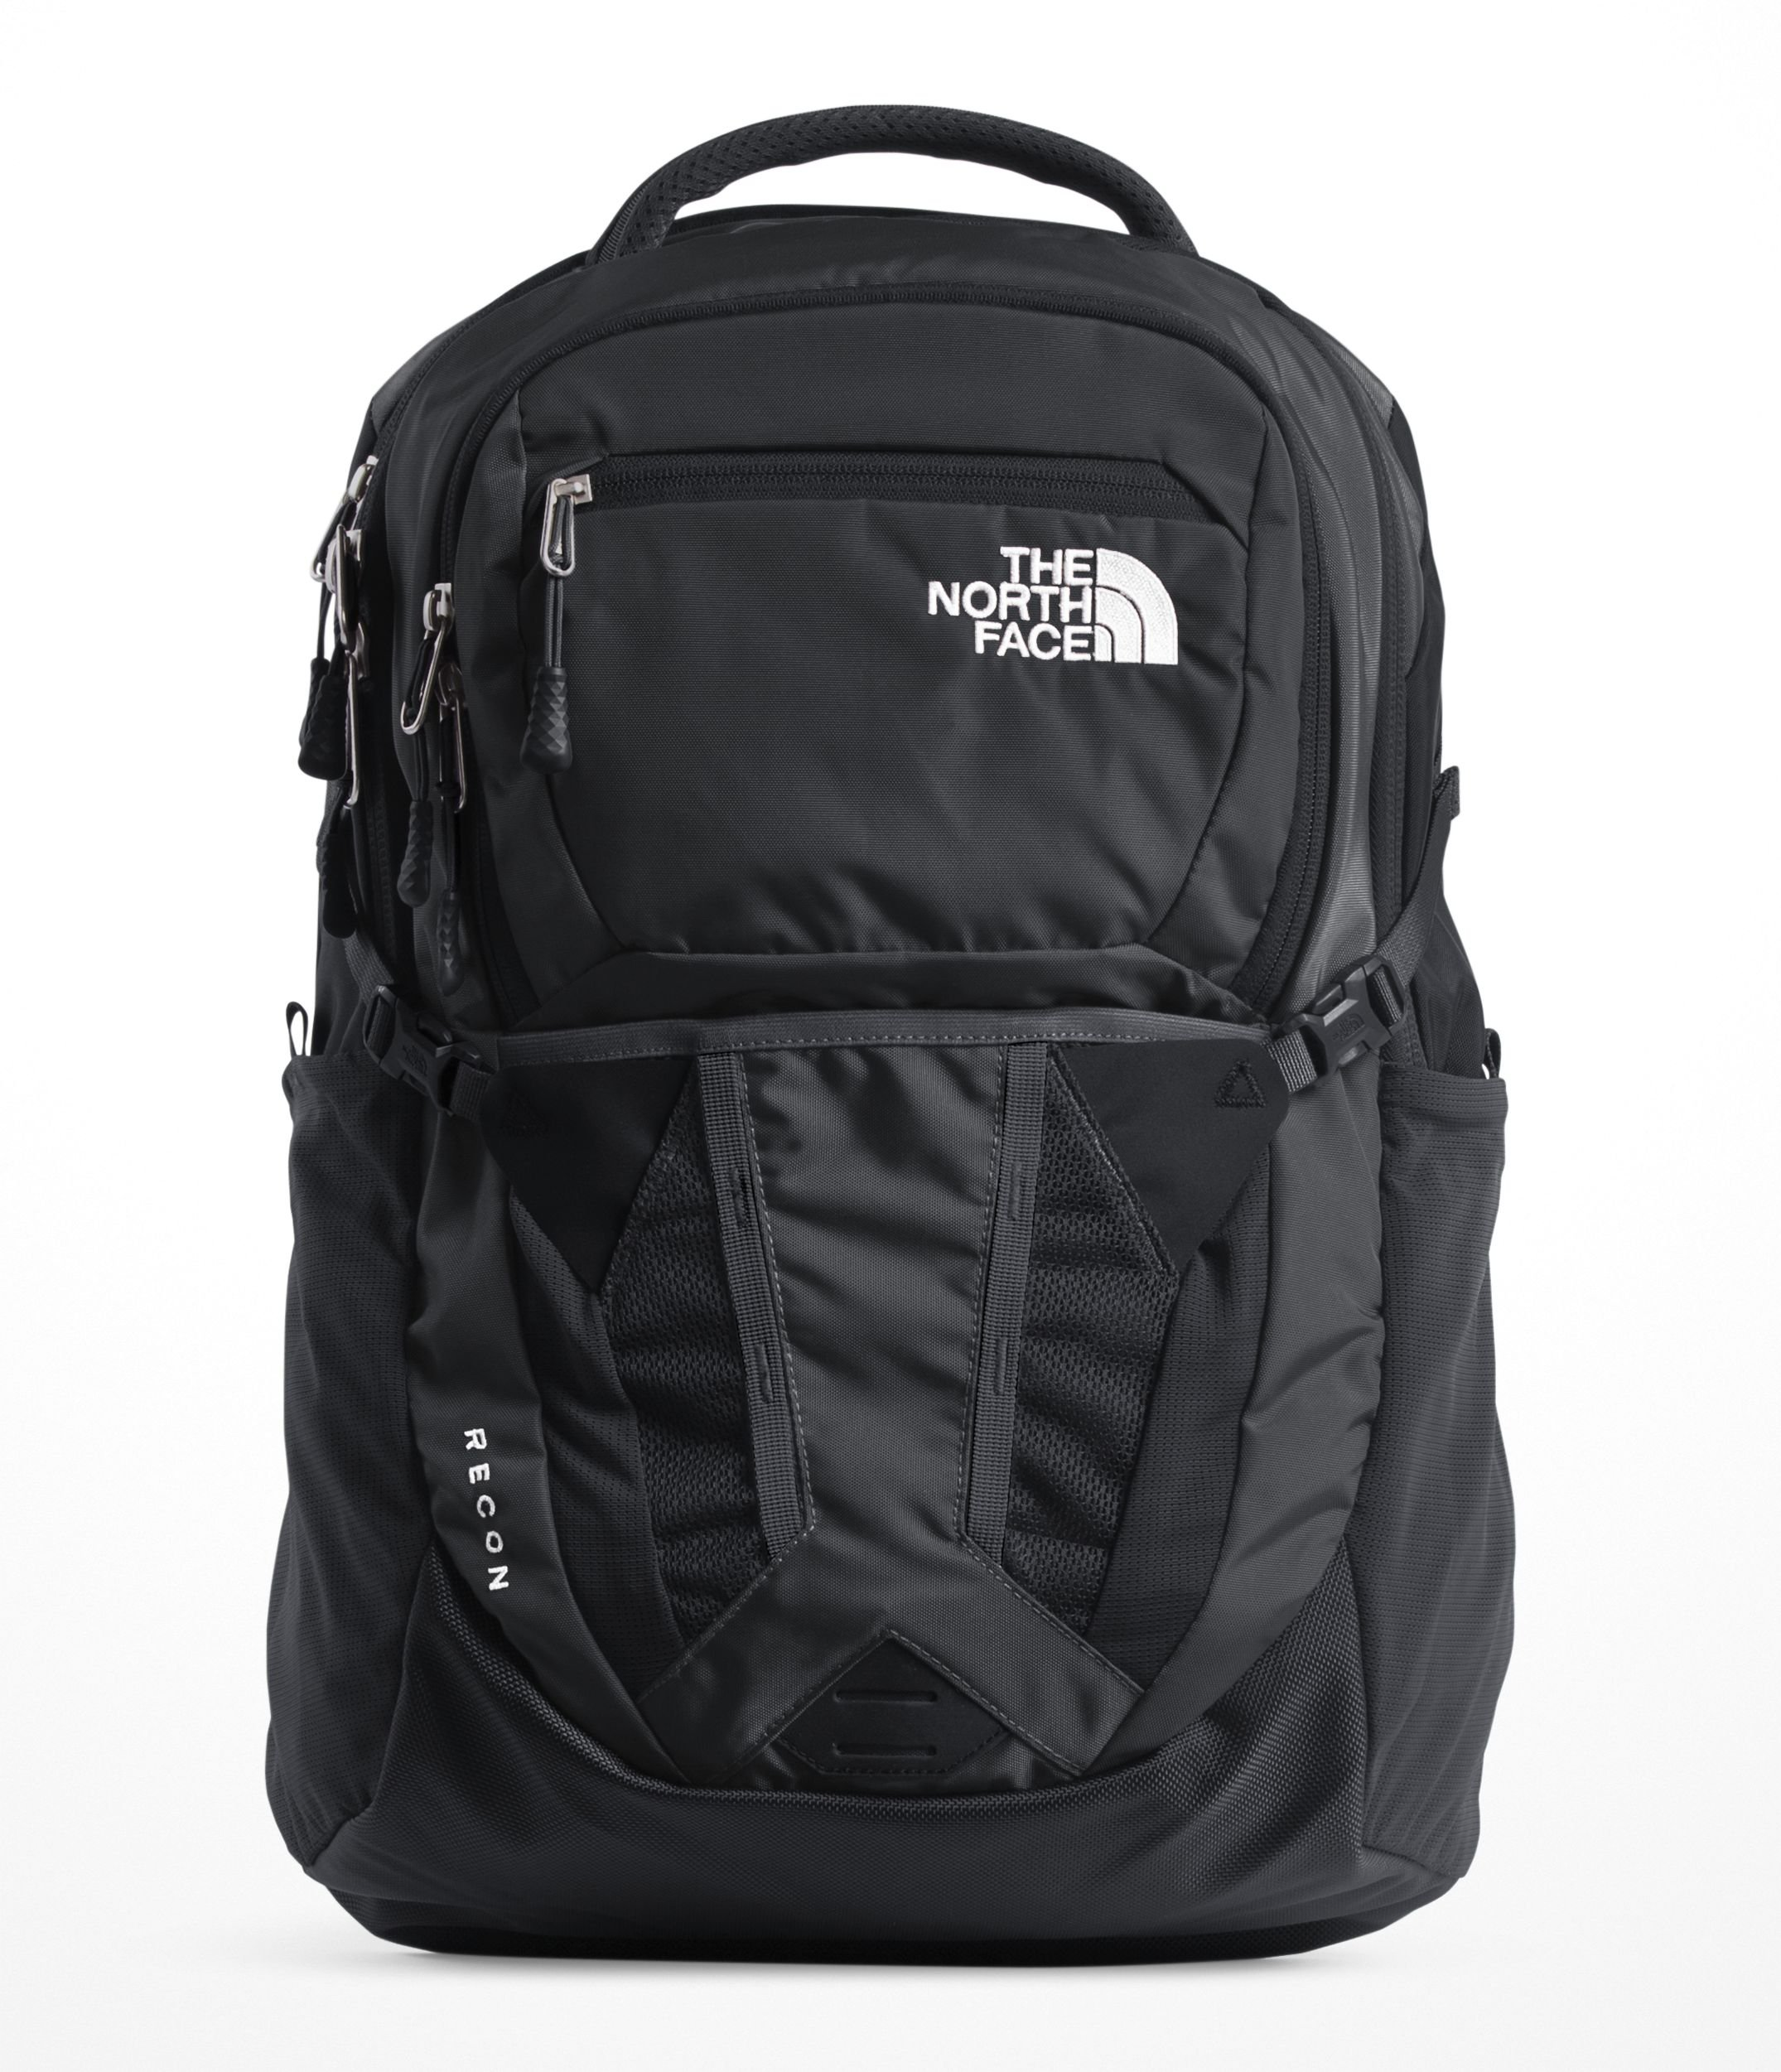 The North Face Women's Recon Backpack - TNF Black - OS by The North Face